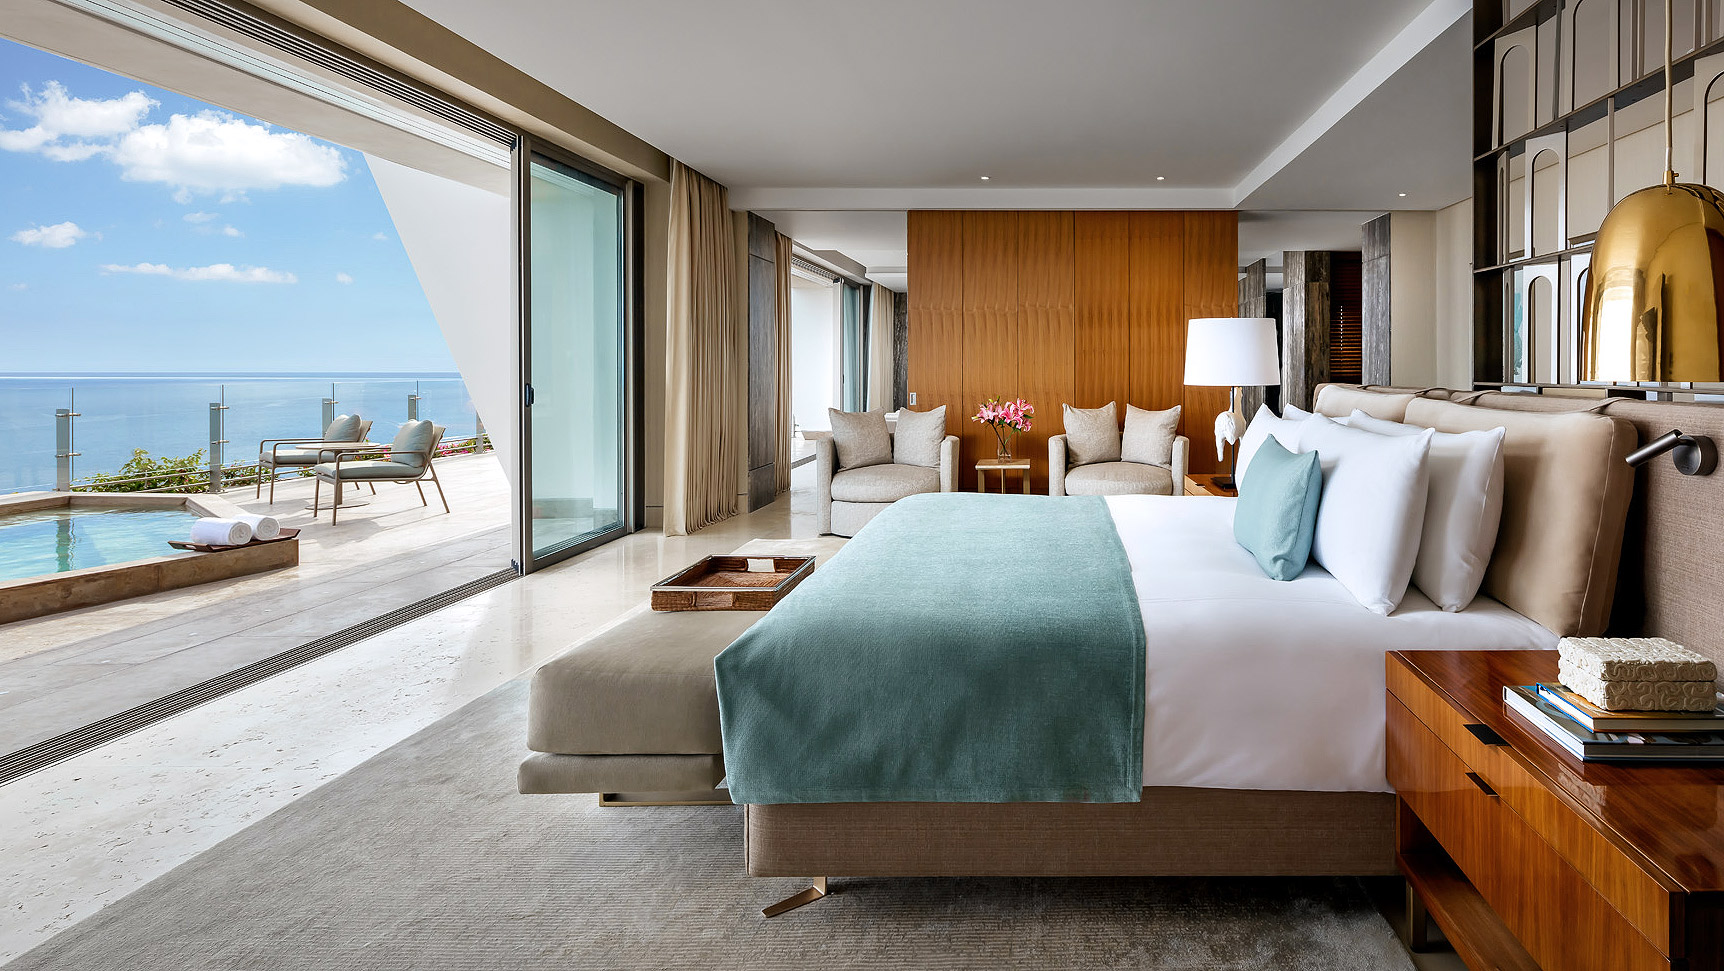 Grand Velas Hotel Resort, Los Cabos - Suite & terrace